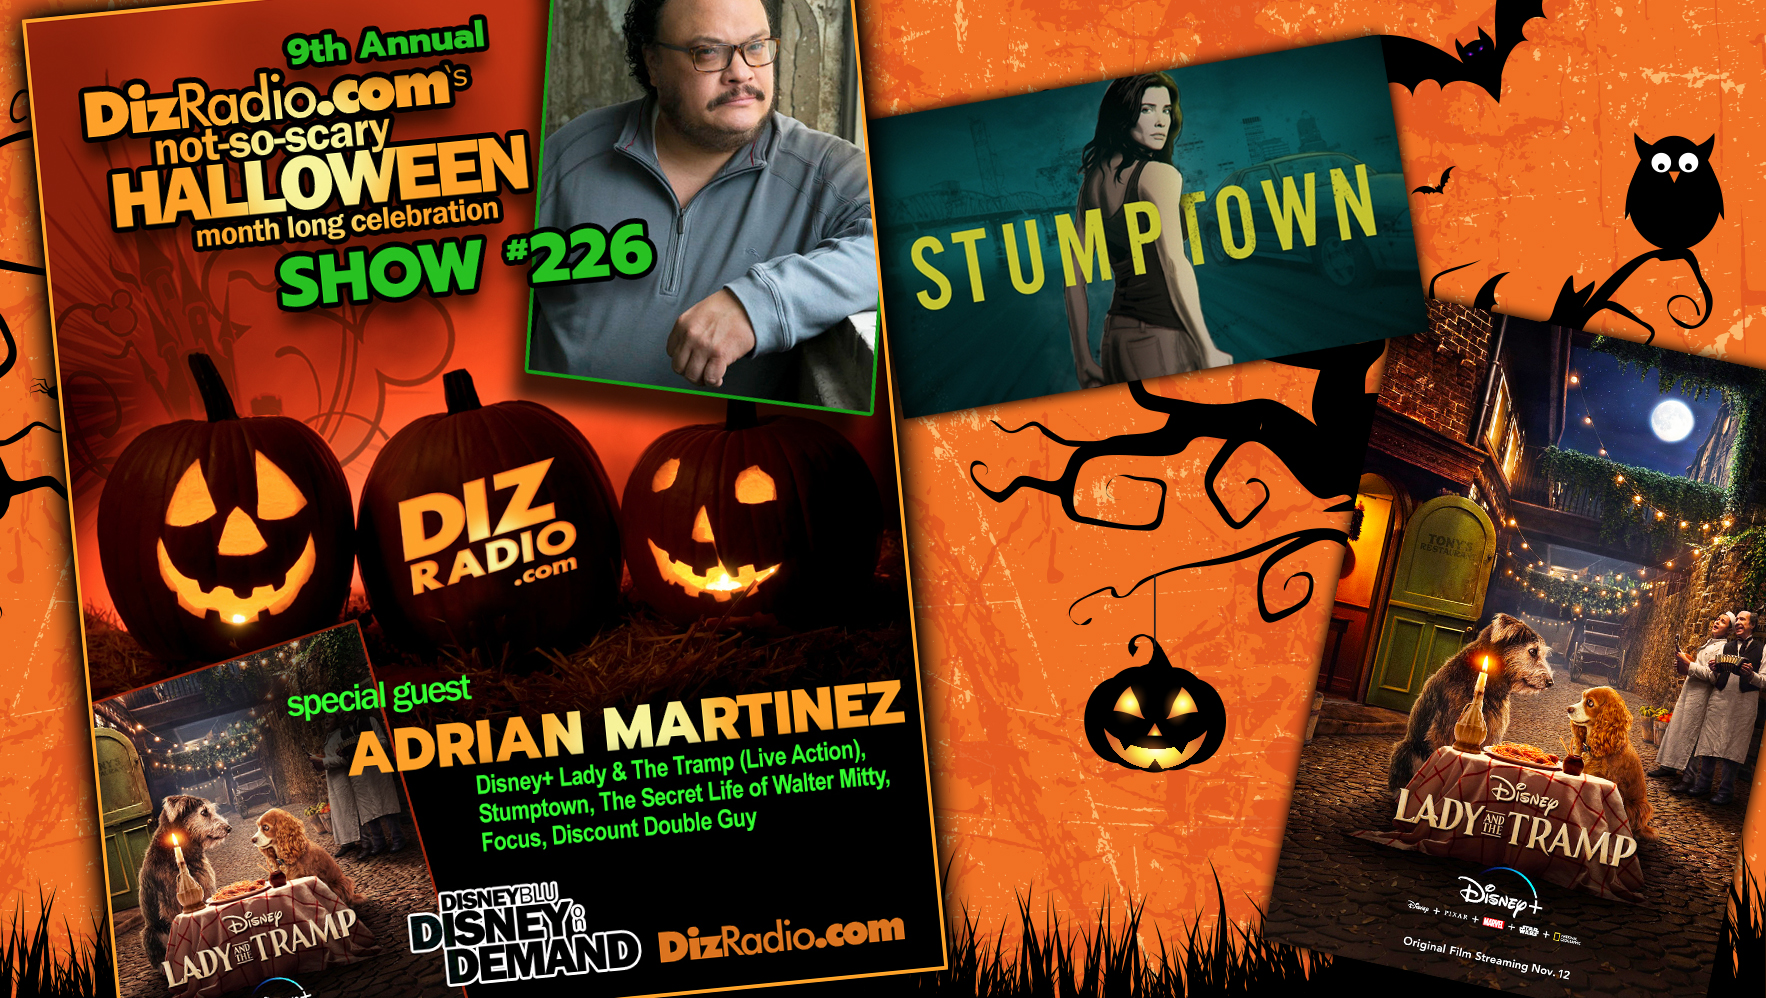 DisneyBlu's DizRadio Disney on Demand Show #226 w/ Guest ADRIAN MARTINEZ (Live Action Lady and the Tramp, Stumptown, Secret Life of Walter Mitty and more)